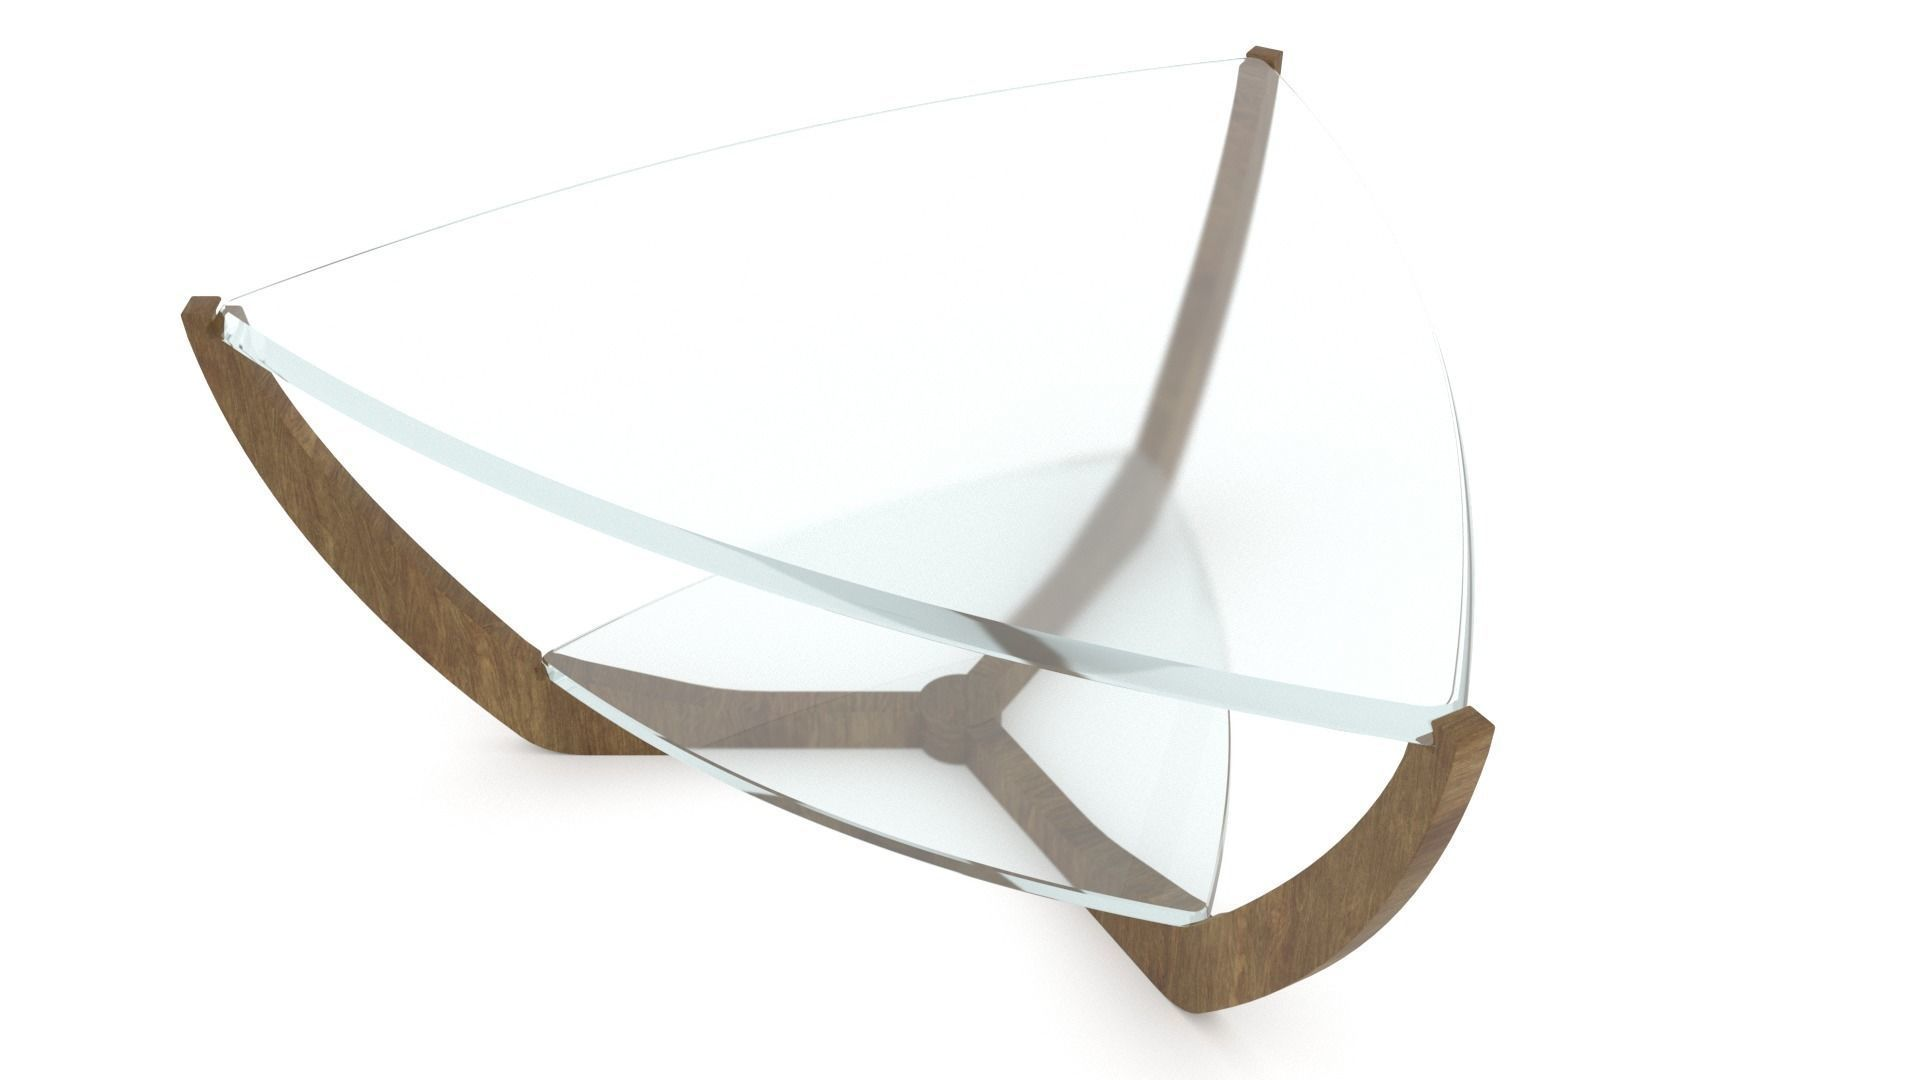 triangular glass coffee table on a wooden base 3ds max 3d model